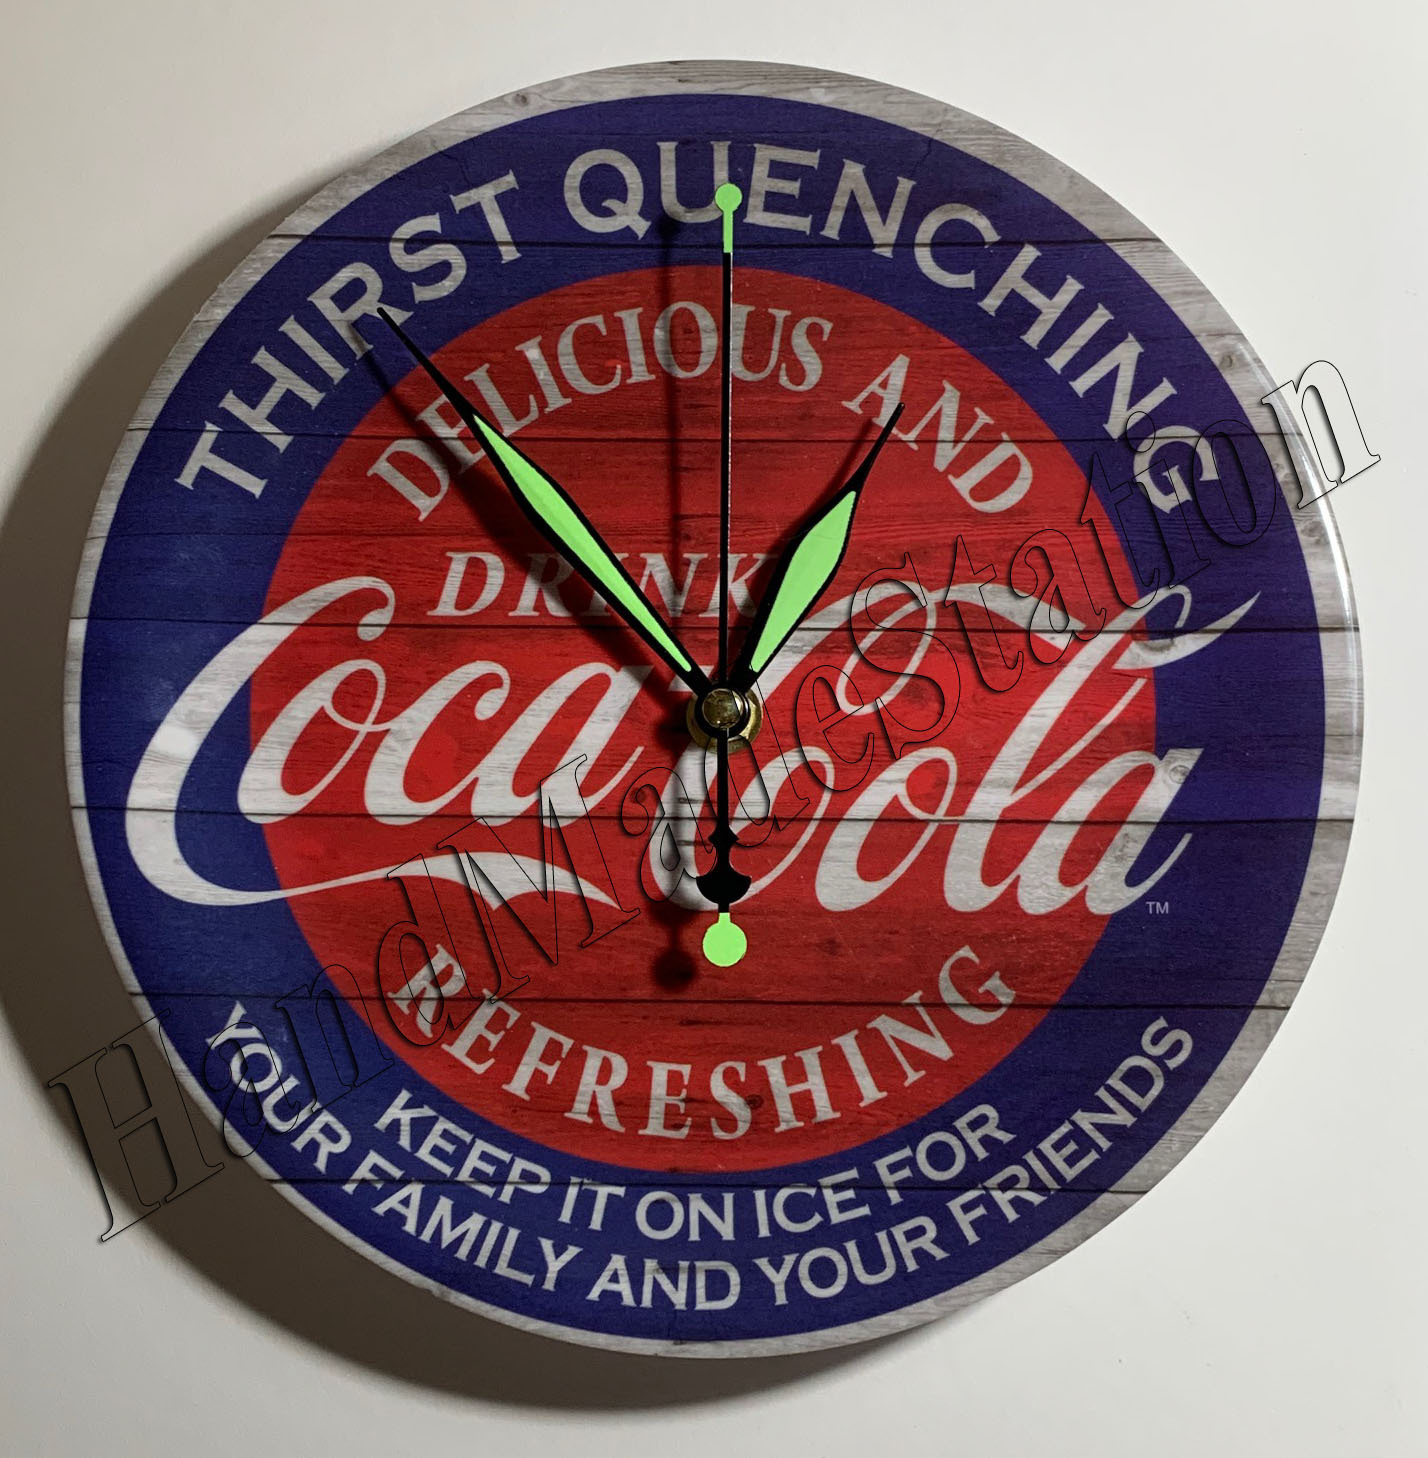 Coke circl red delicious wall clock2